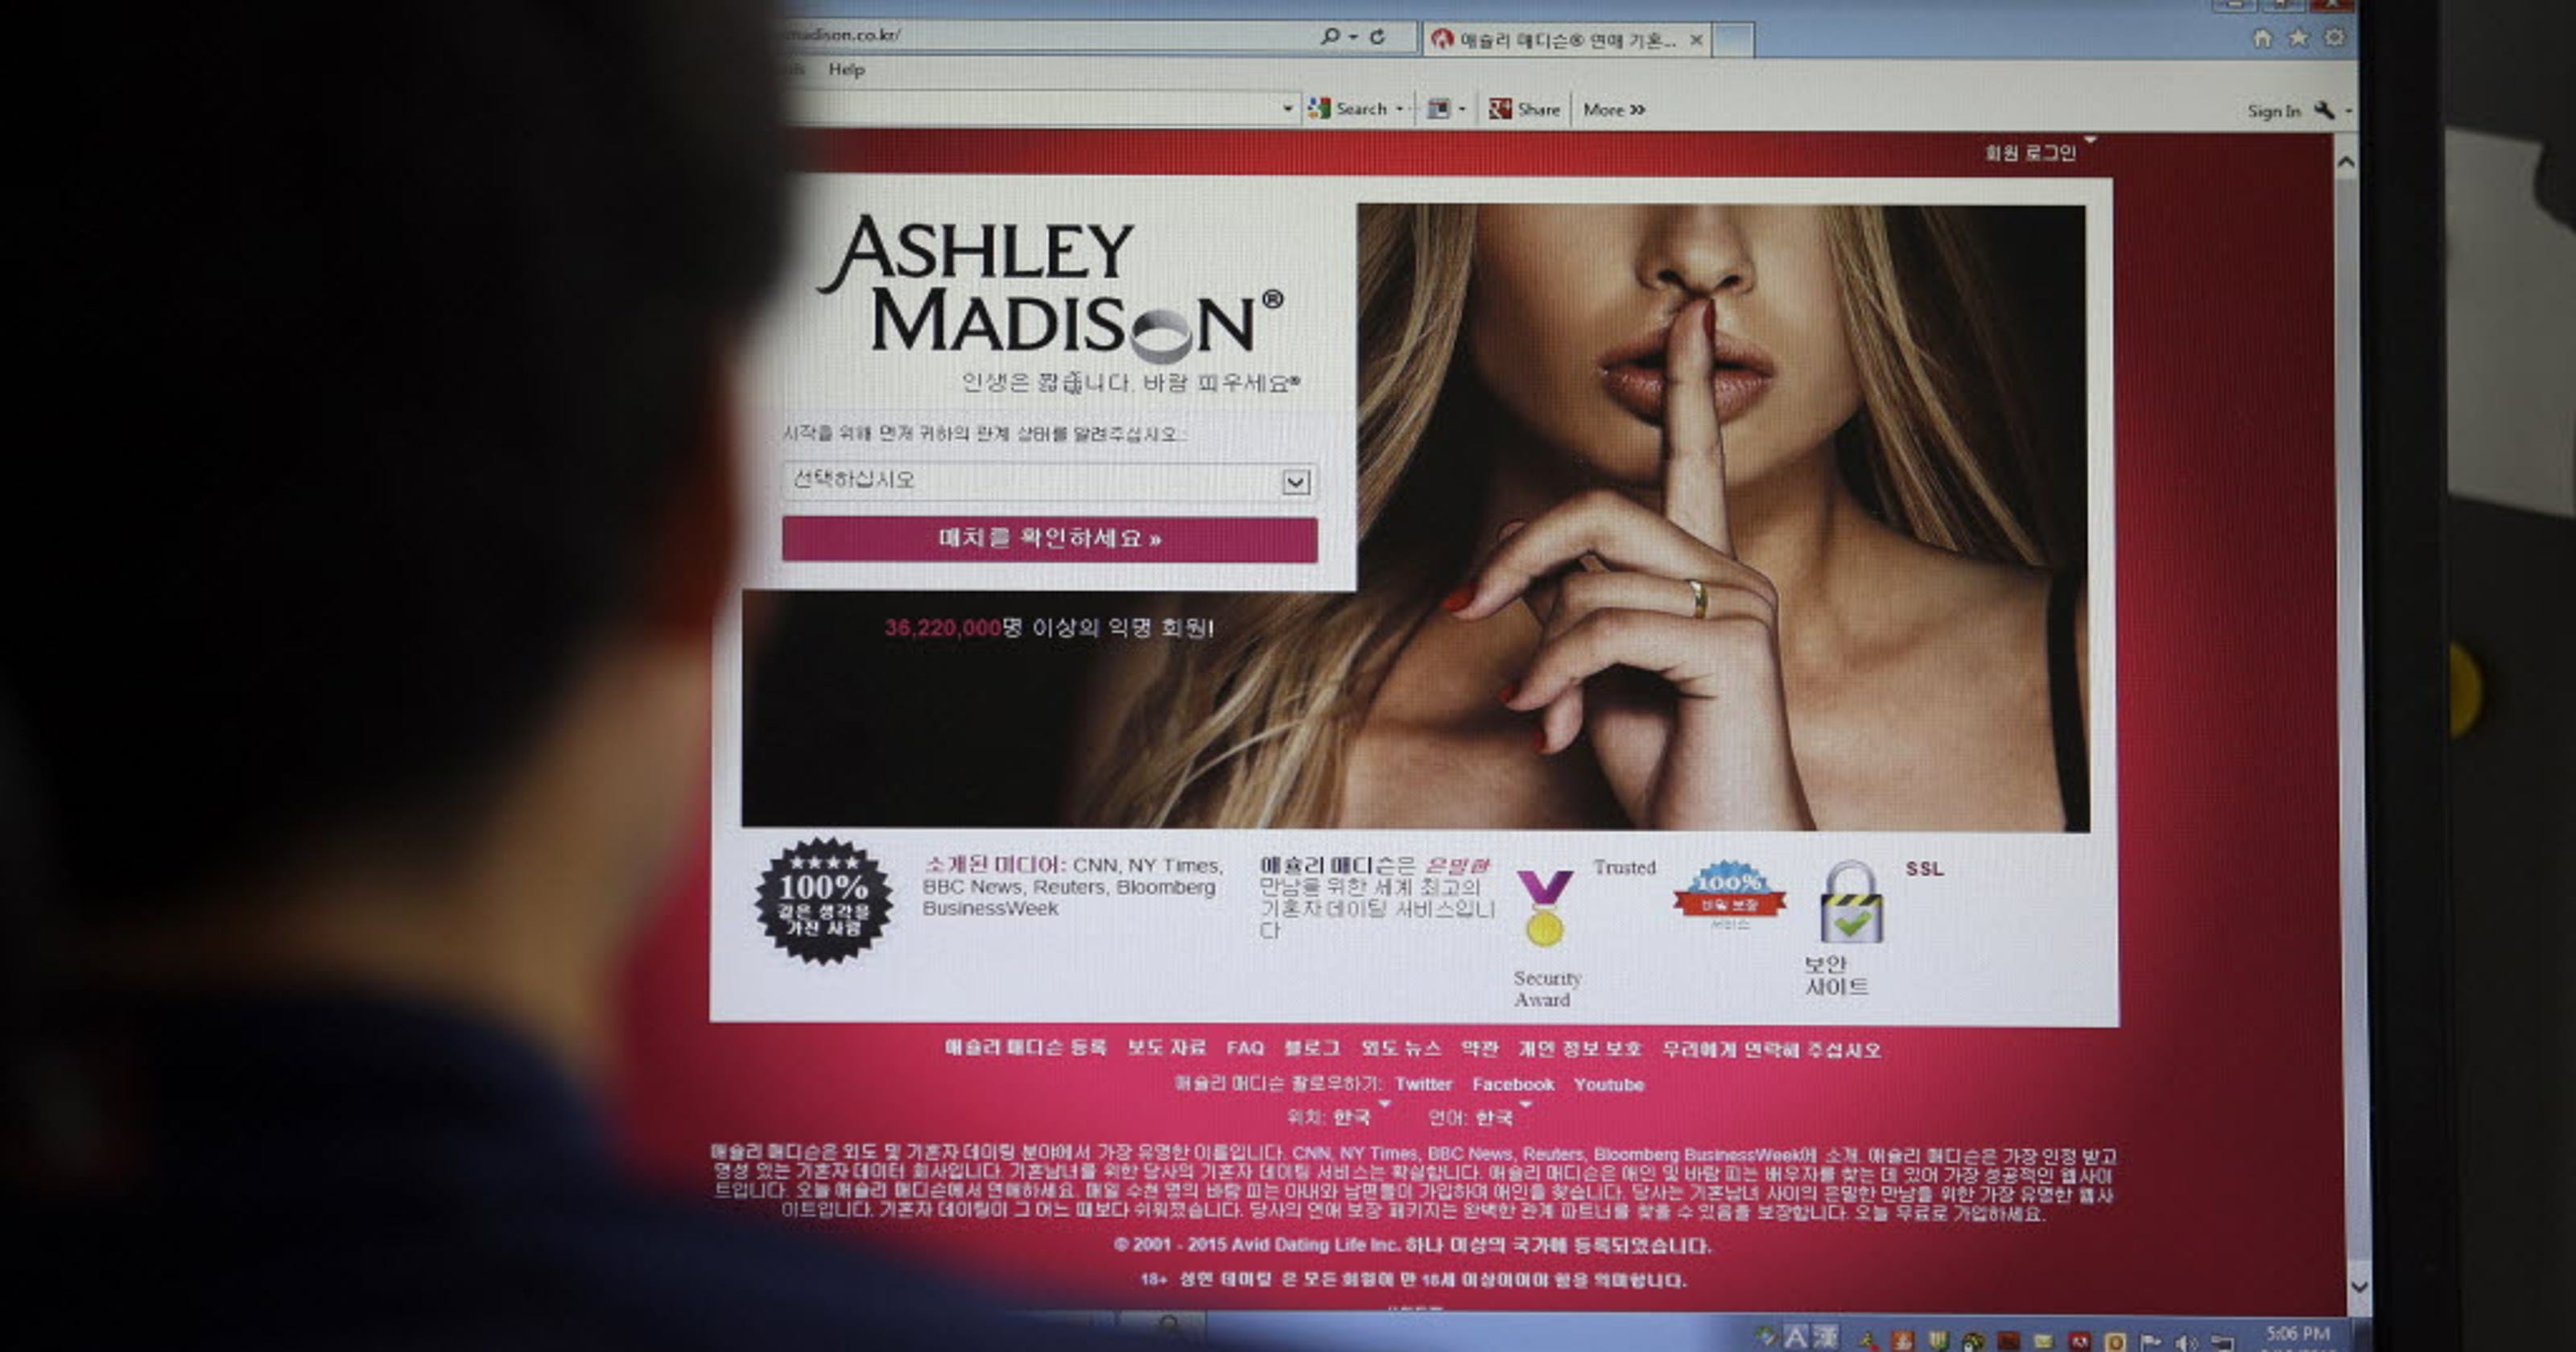 Hacked Data From Ashley Madison Cheating Site Is Posted Report Says